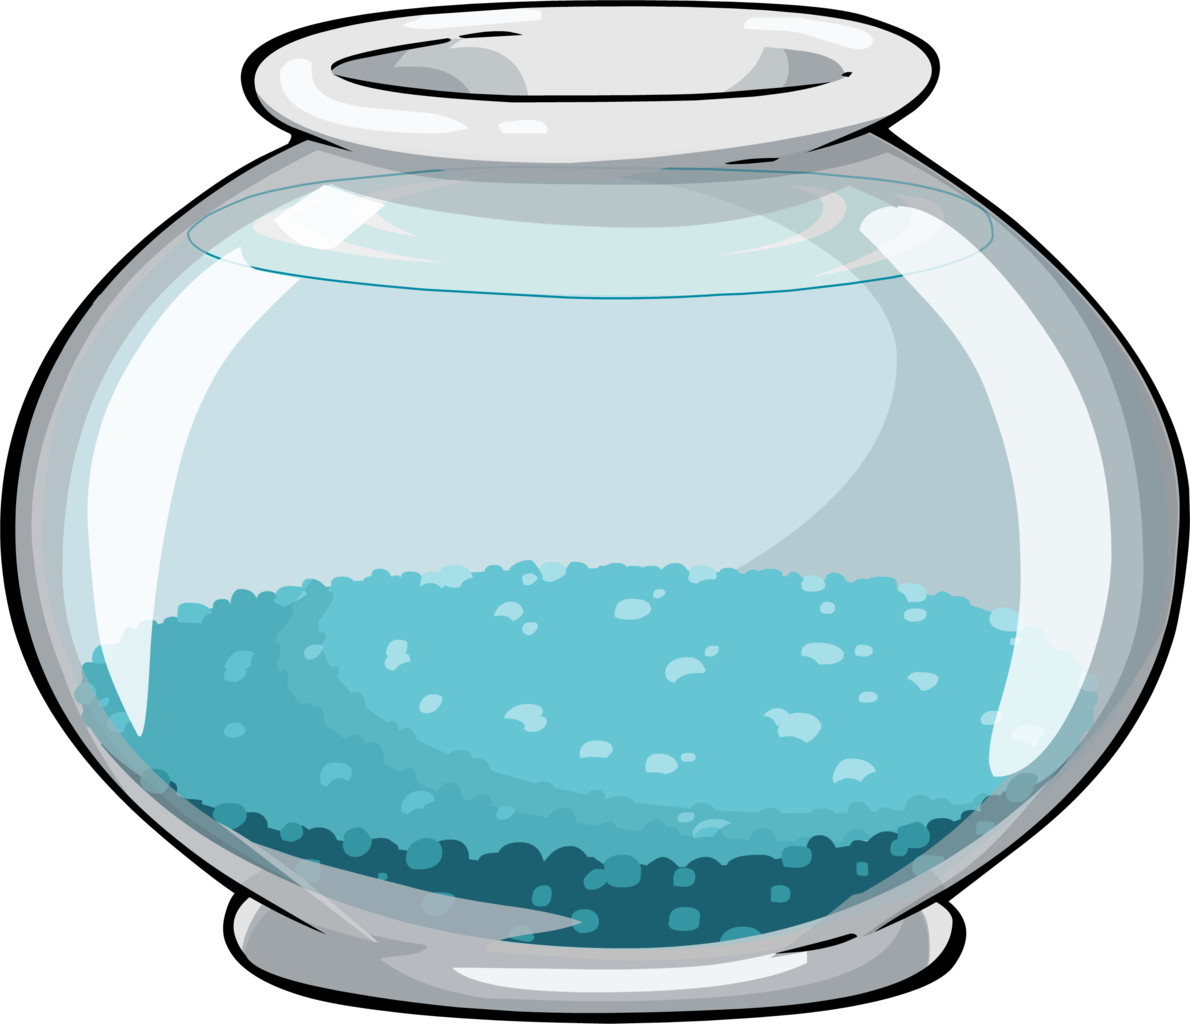 Fish bowl with water clipart clip black and white download Image - Fishbowl.png | Club Penguin Wiki | FANDOM powered by Wikia clip black and white download